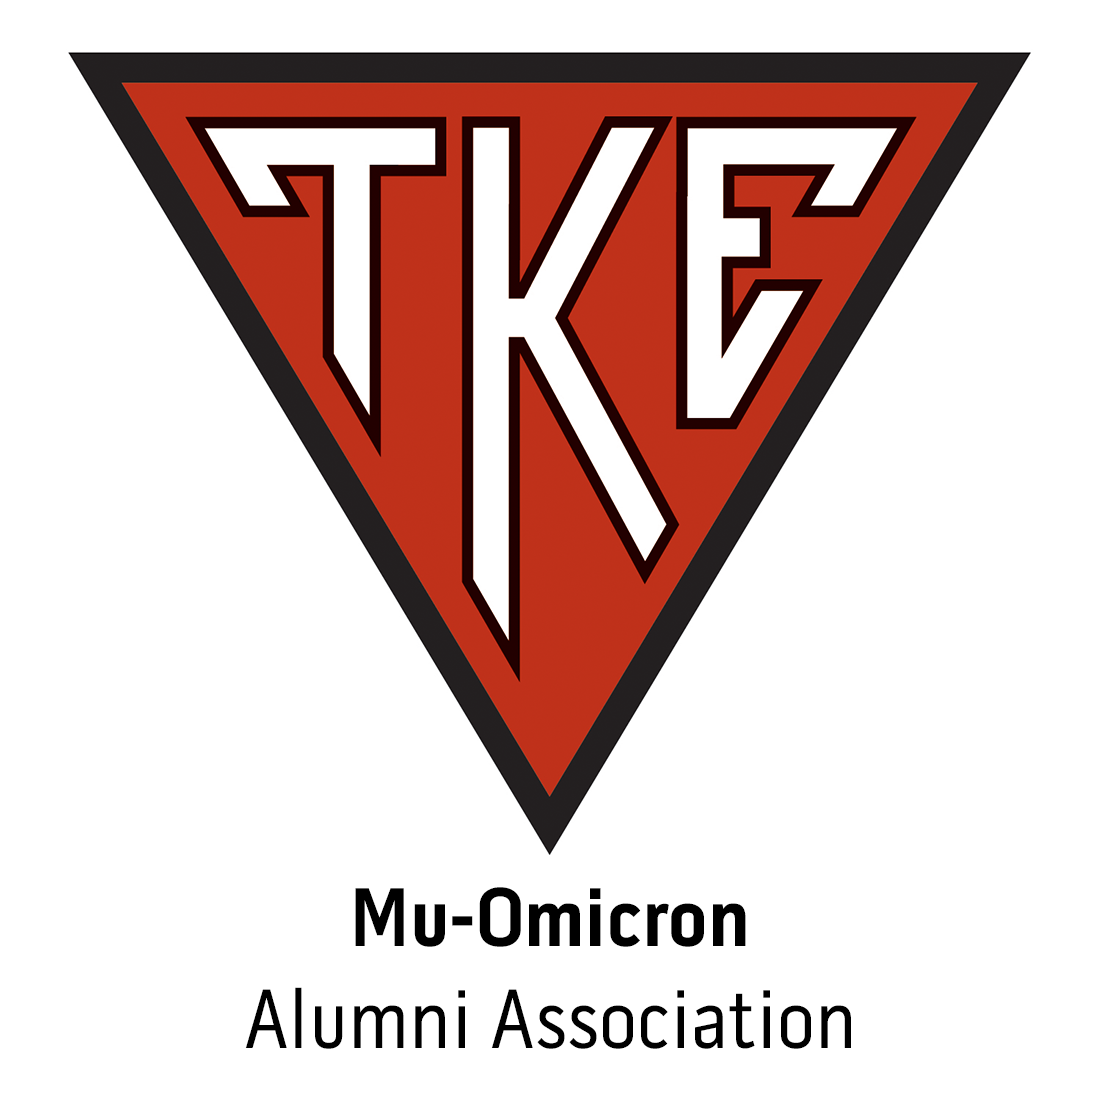 Mu-Omicron Alumni Association at Tennessee Technological University